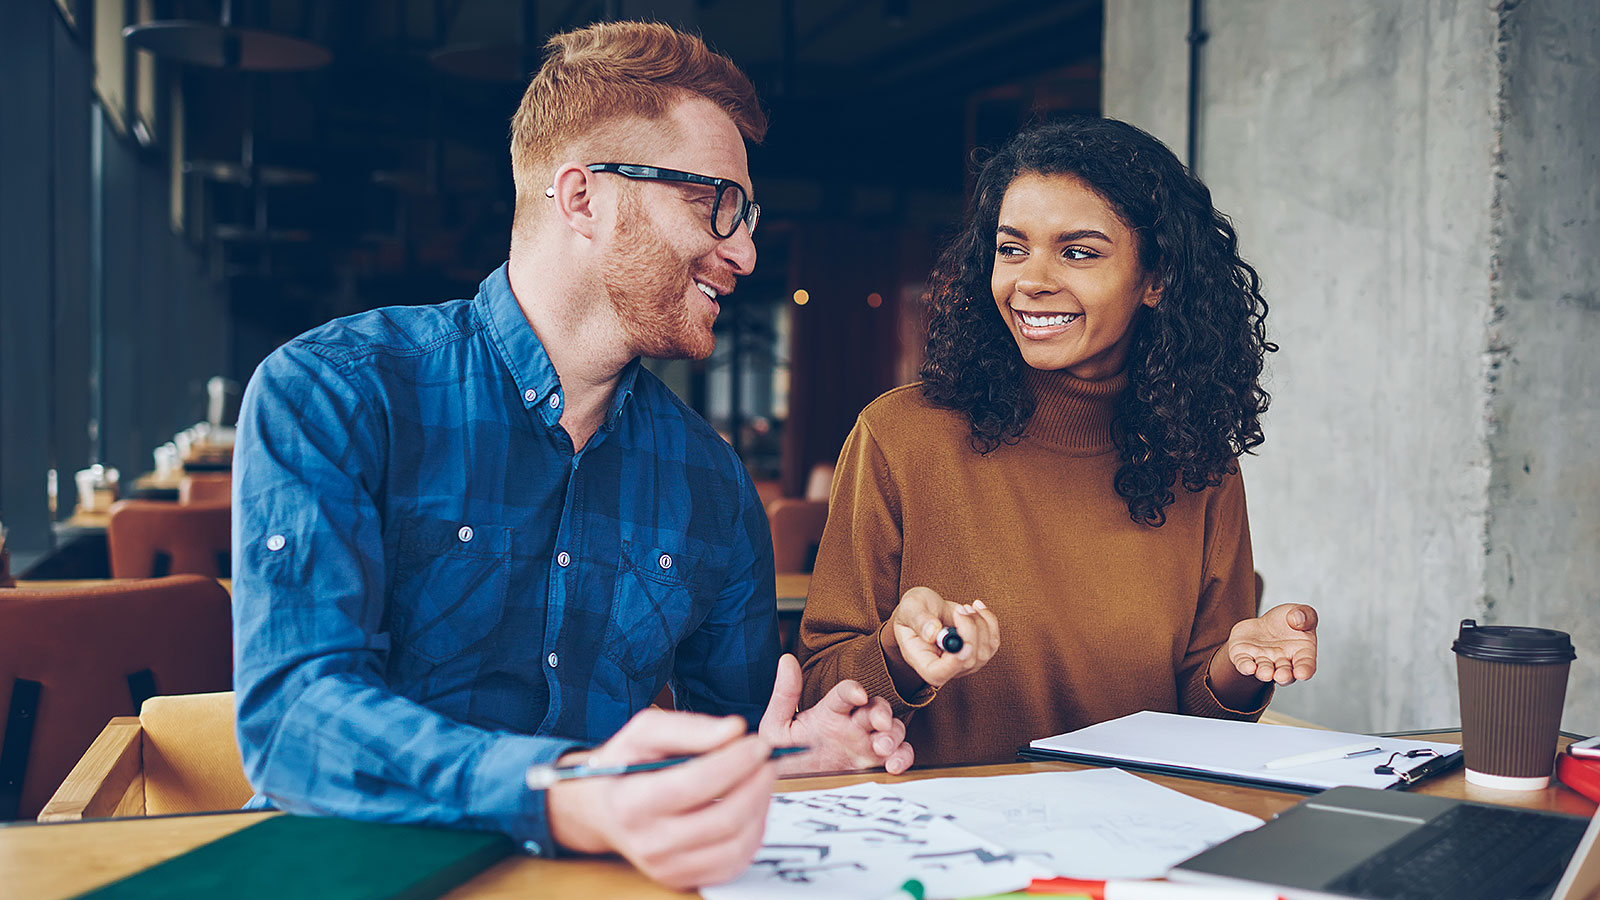 This 1 unconventional relationship is the key to creating lasting connections